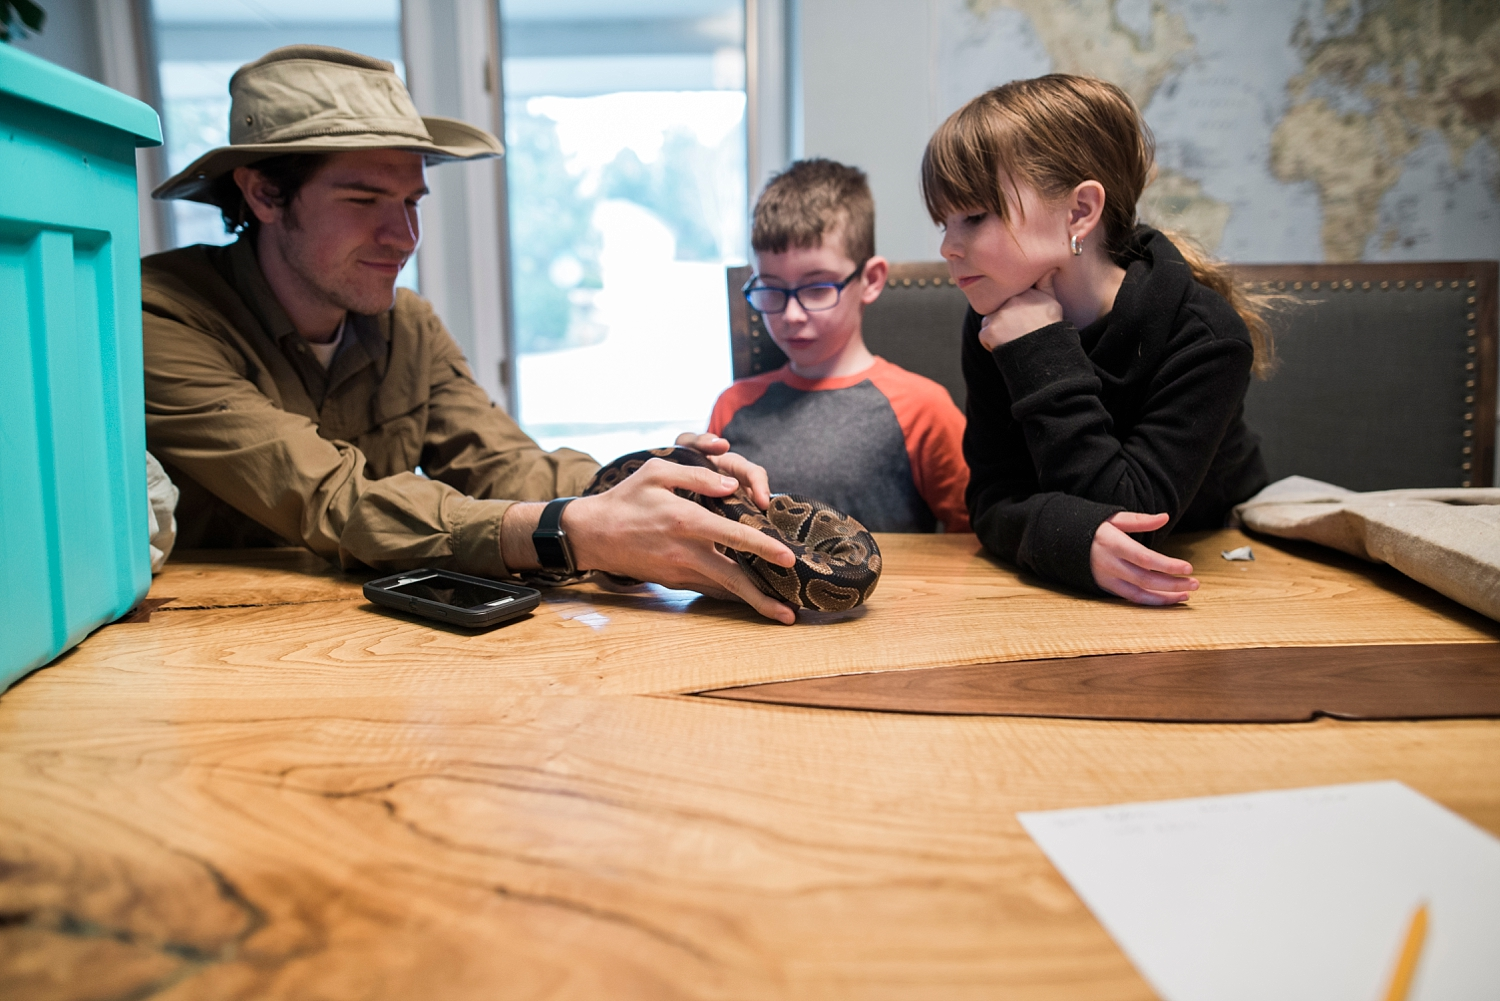 kids-hold-snake-during-in-home-reptile-class-denver-getting-unschooled.jpg